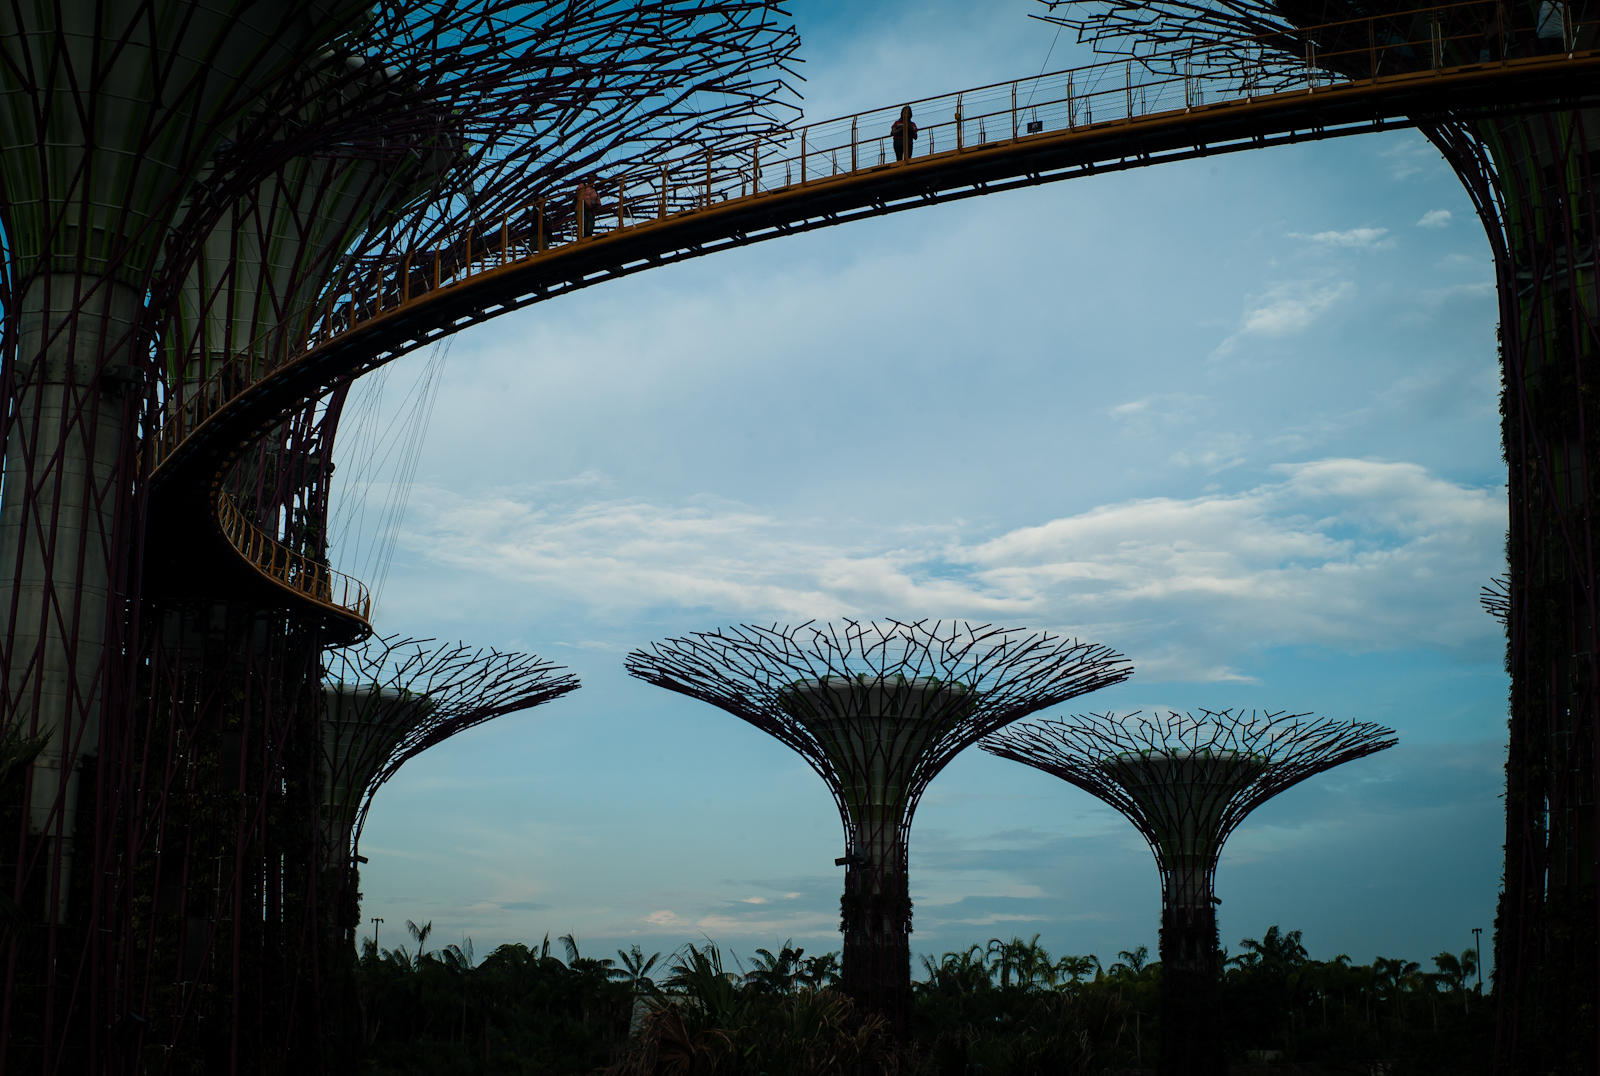 Silhouette of Gardens by the Bay